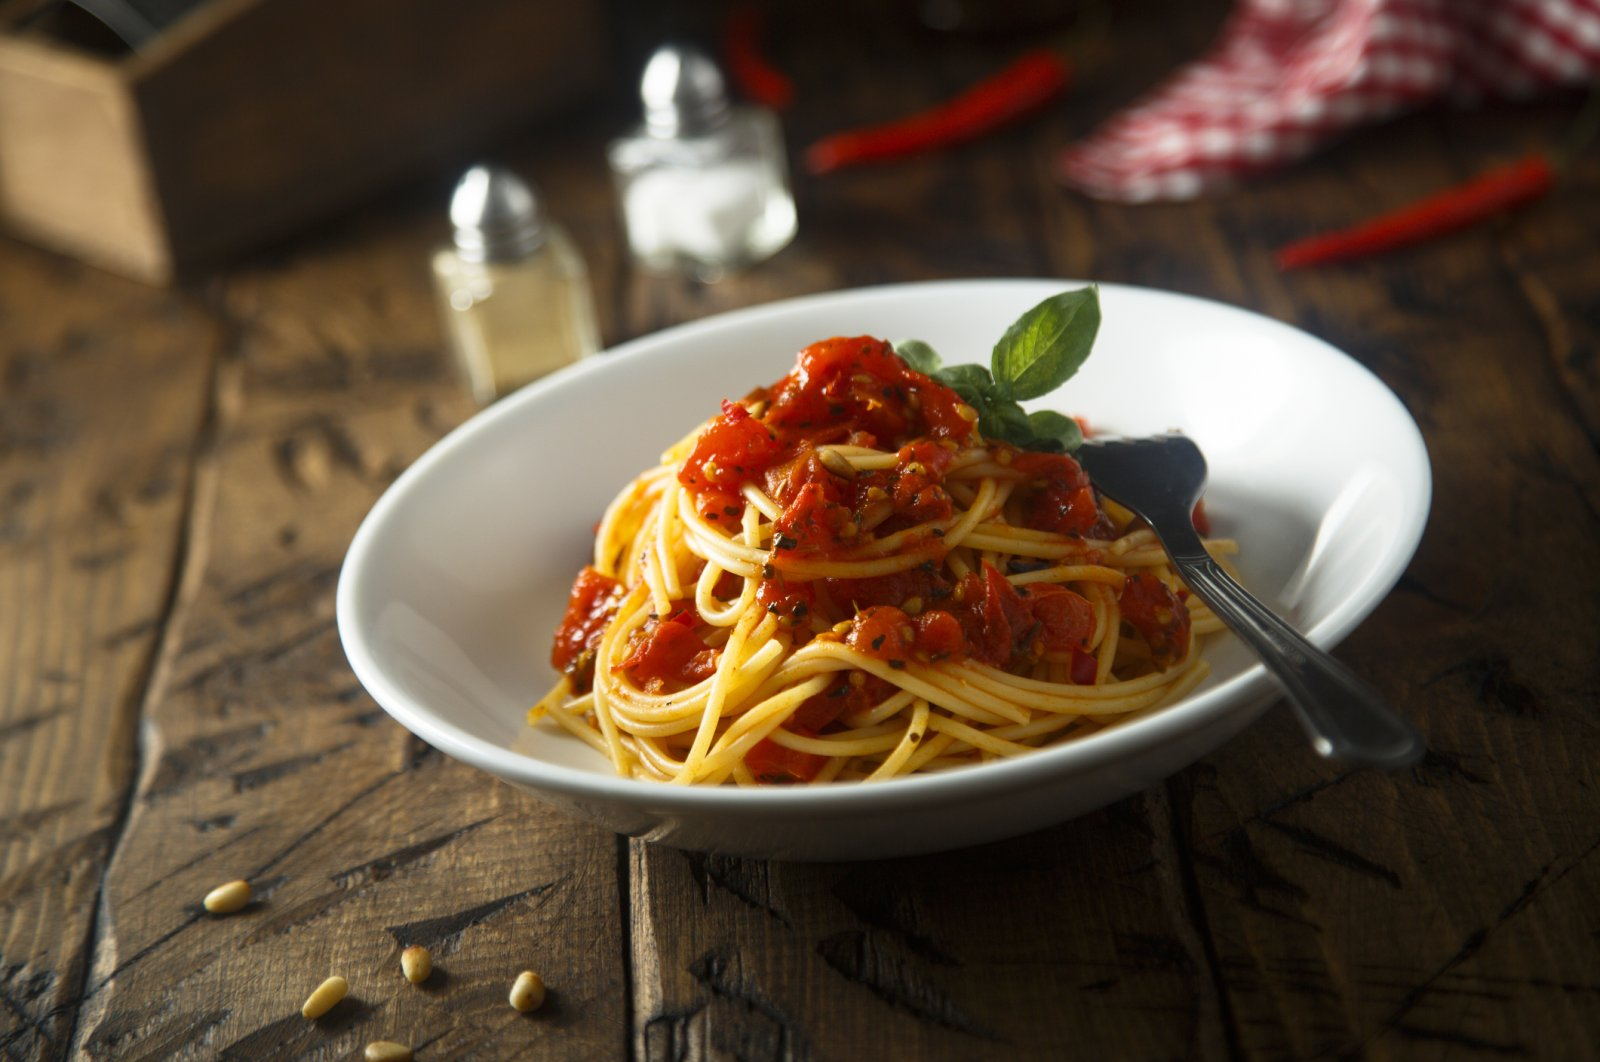 """Dent said he was unable to eat tomato sauce because it was all of a sudden """"disgusting."""" (iStock Photo)"""